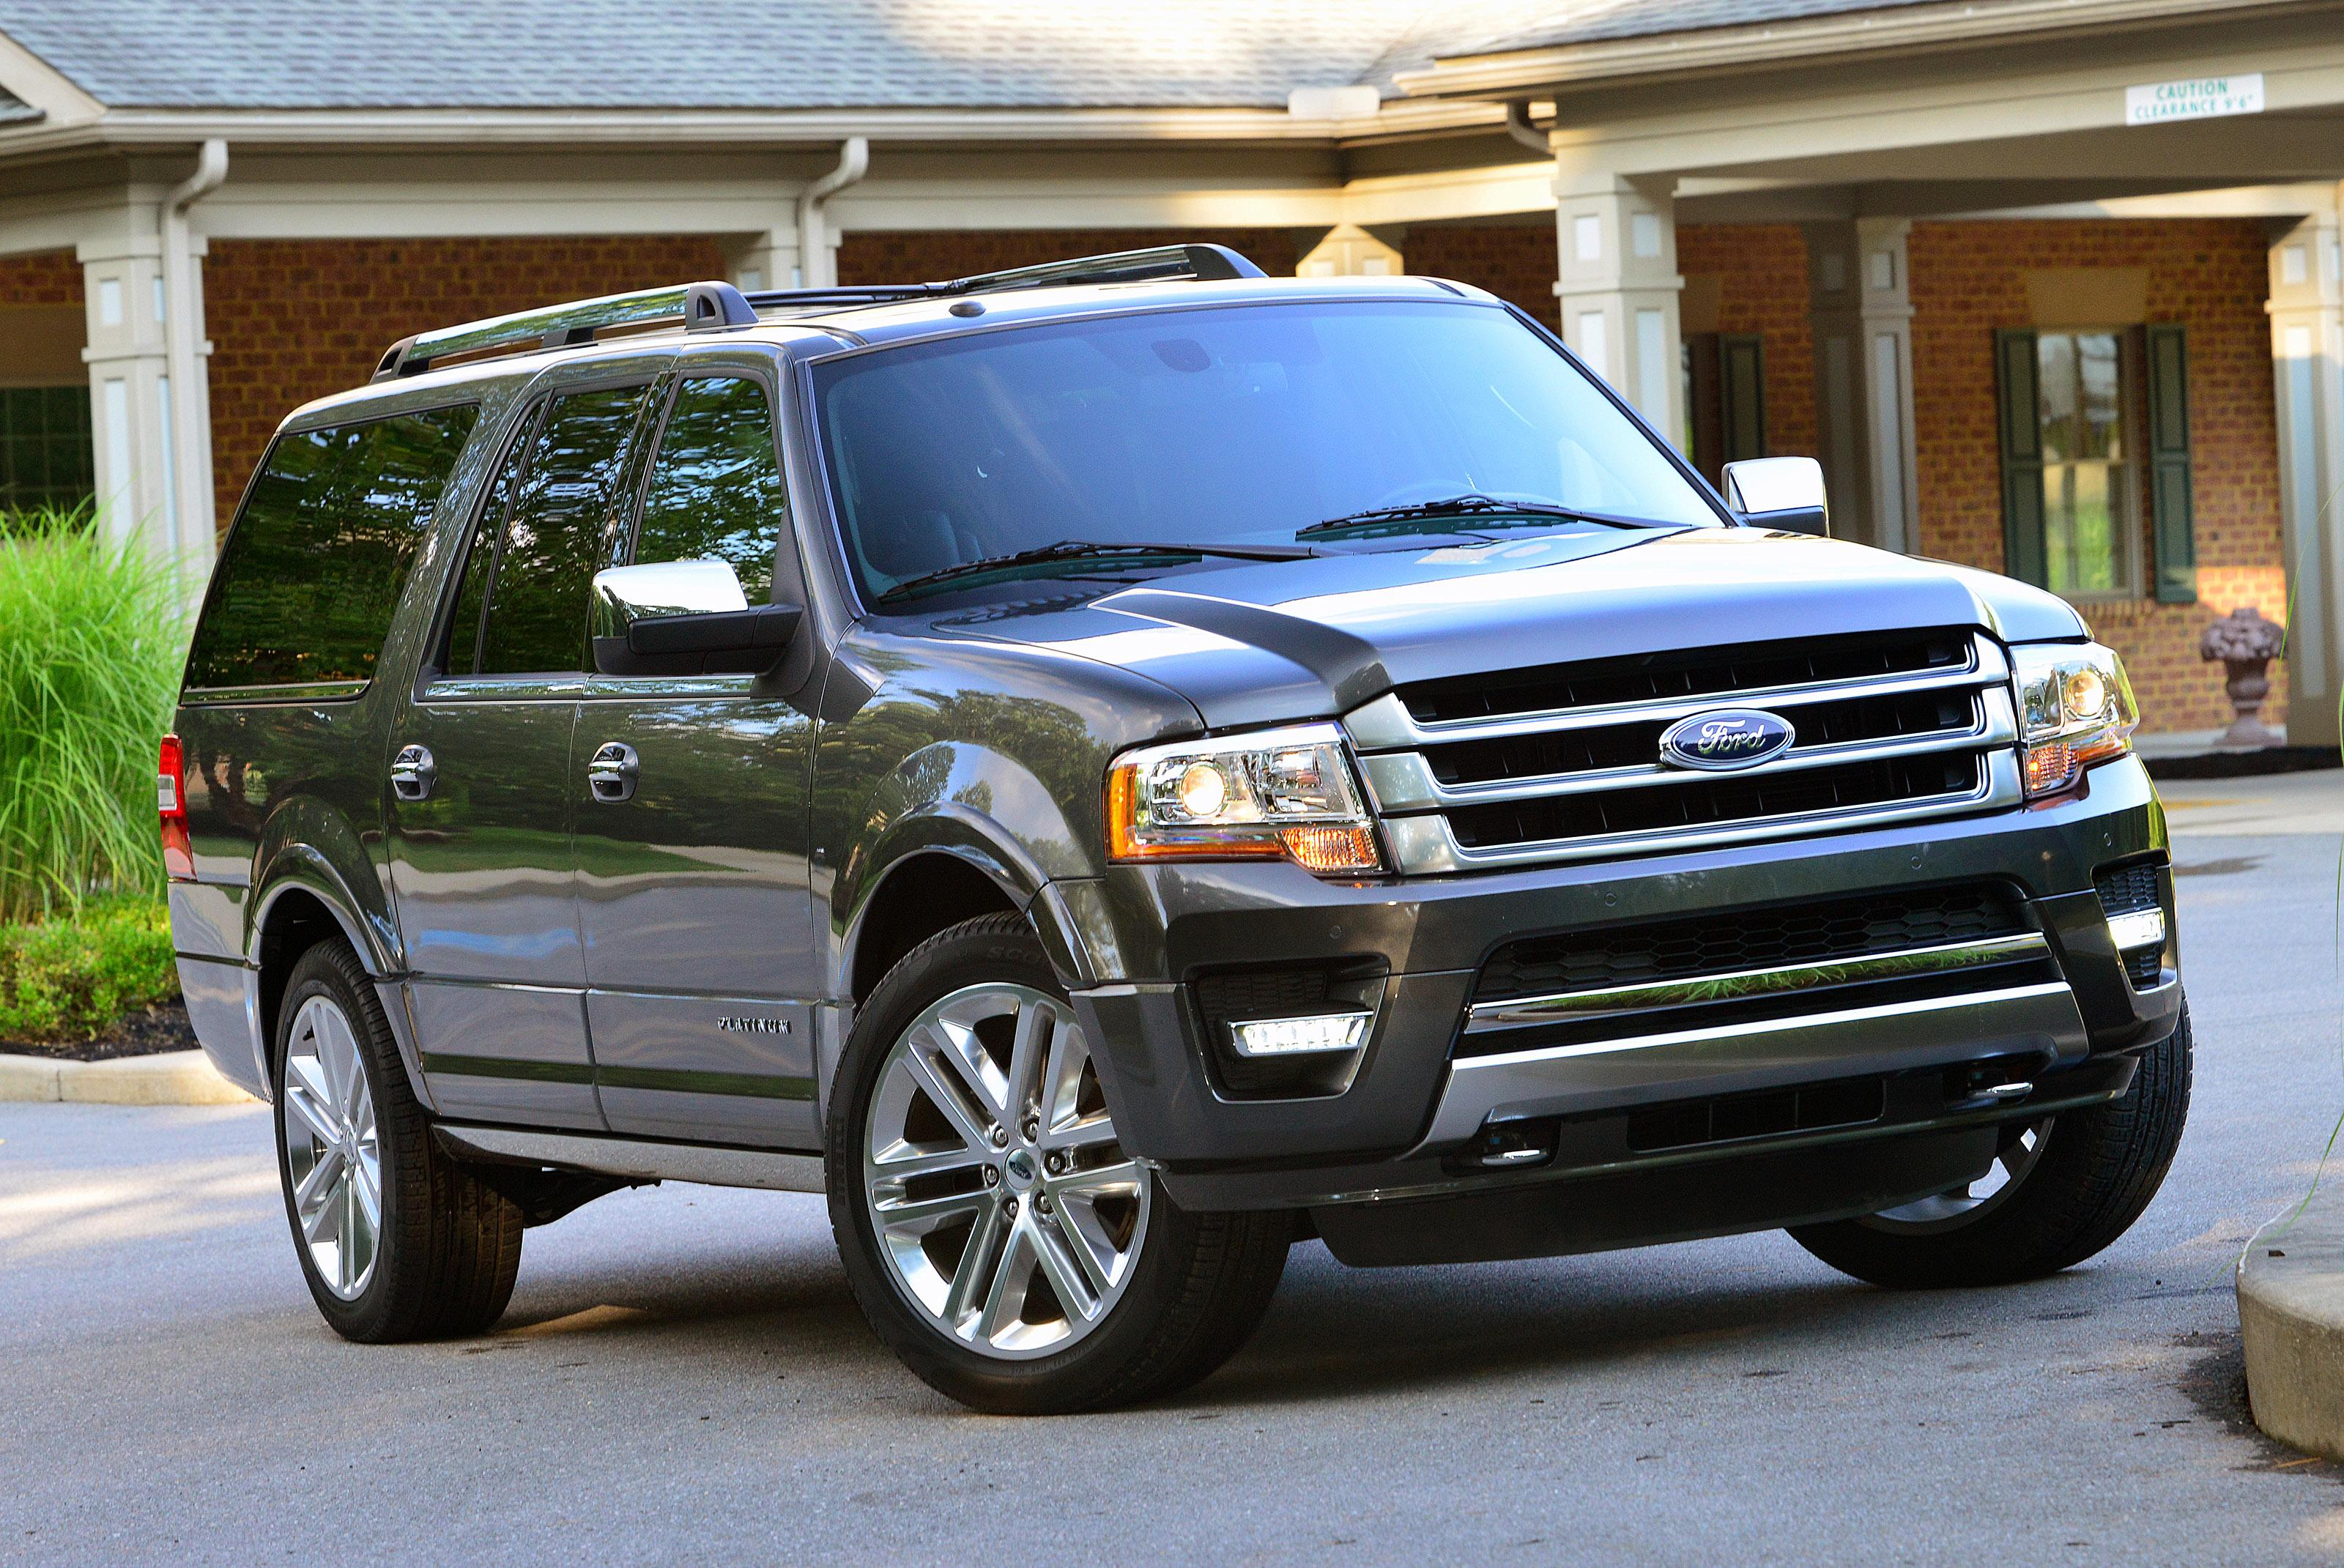 Ford Expedition 2015 #6